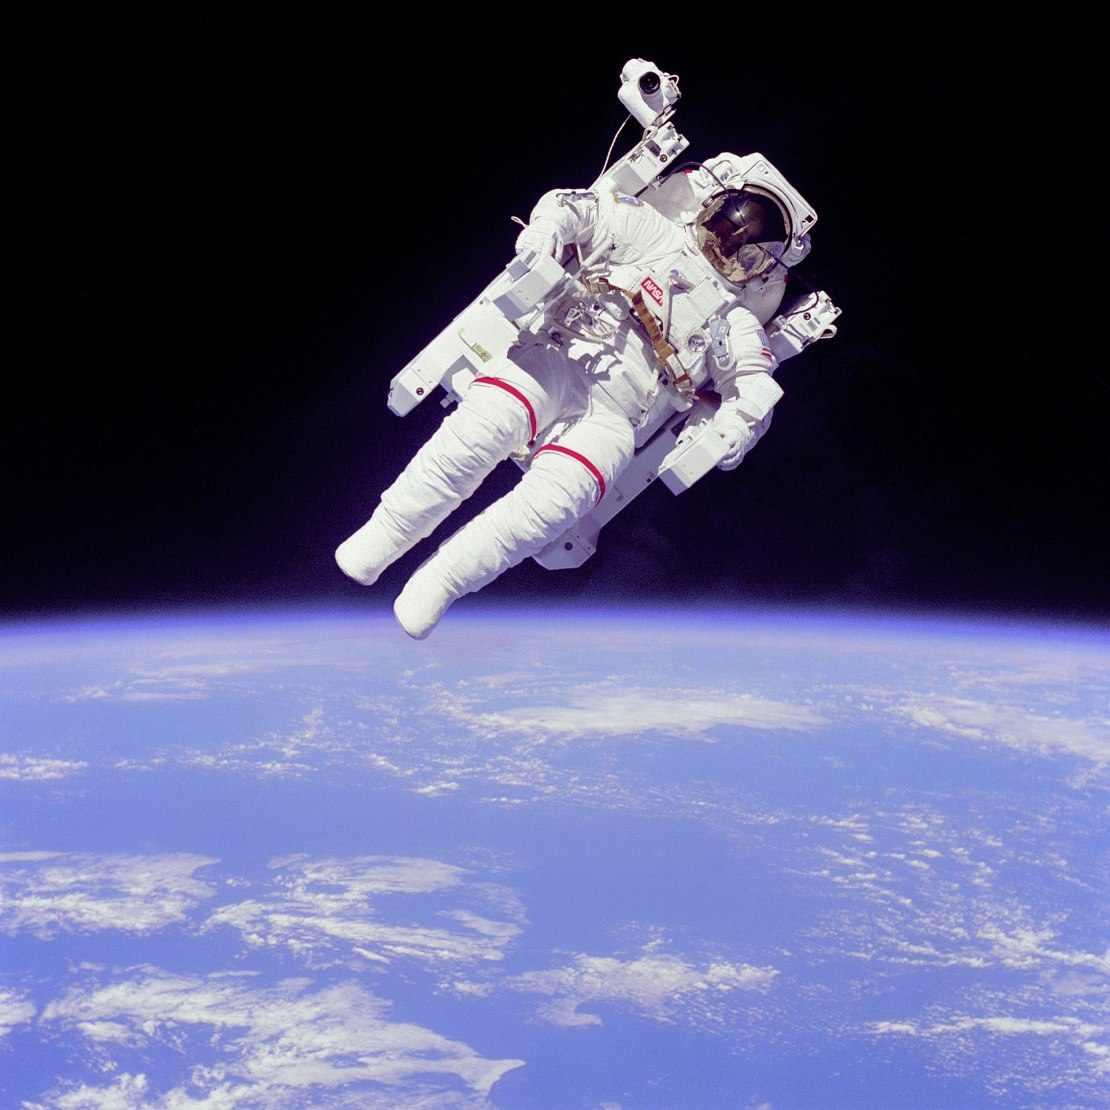 Astronaut with Earth in the background.